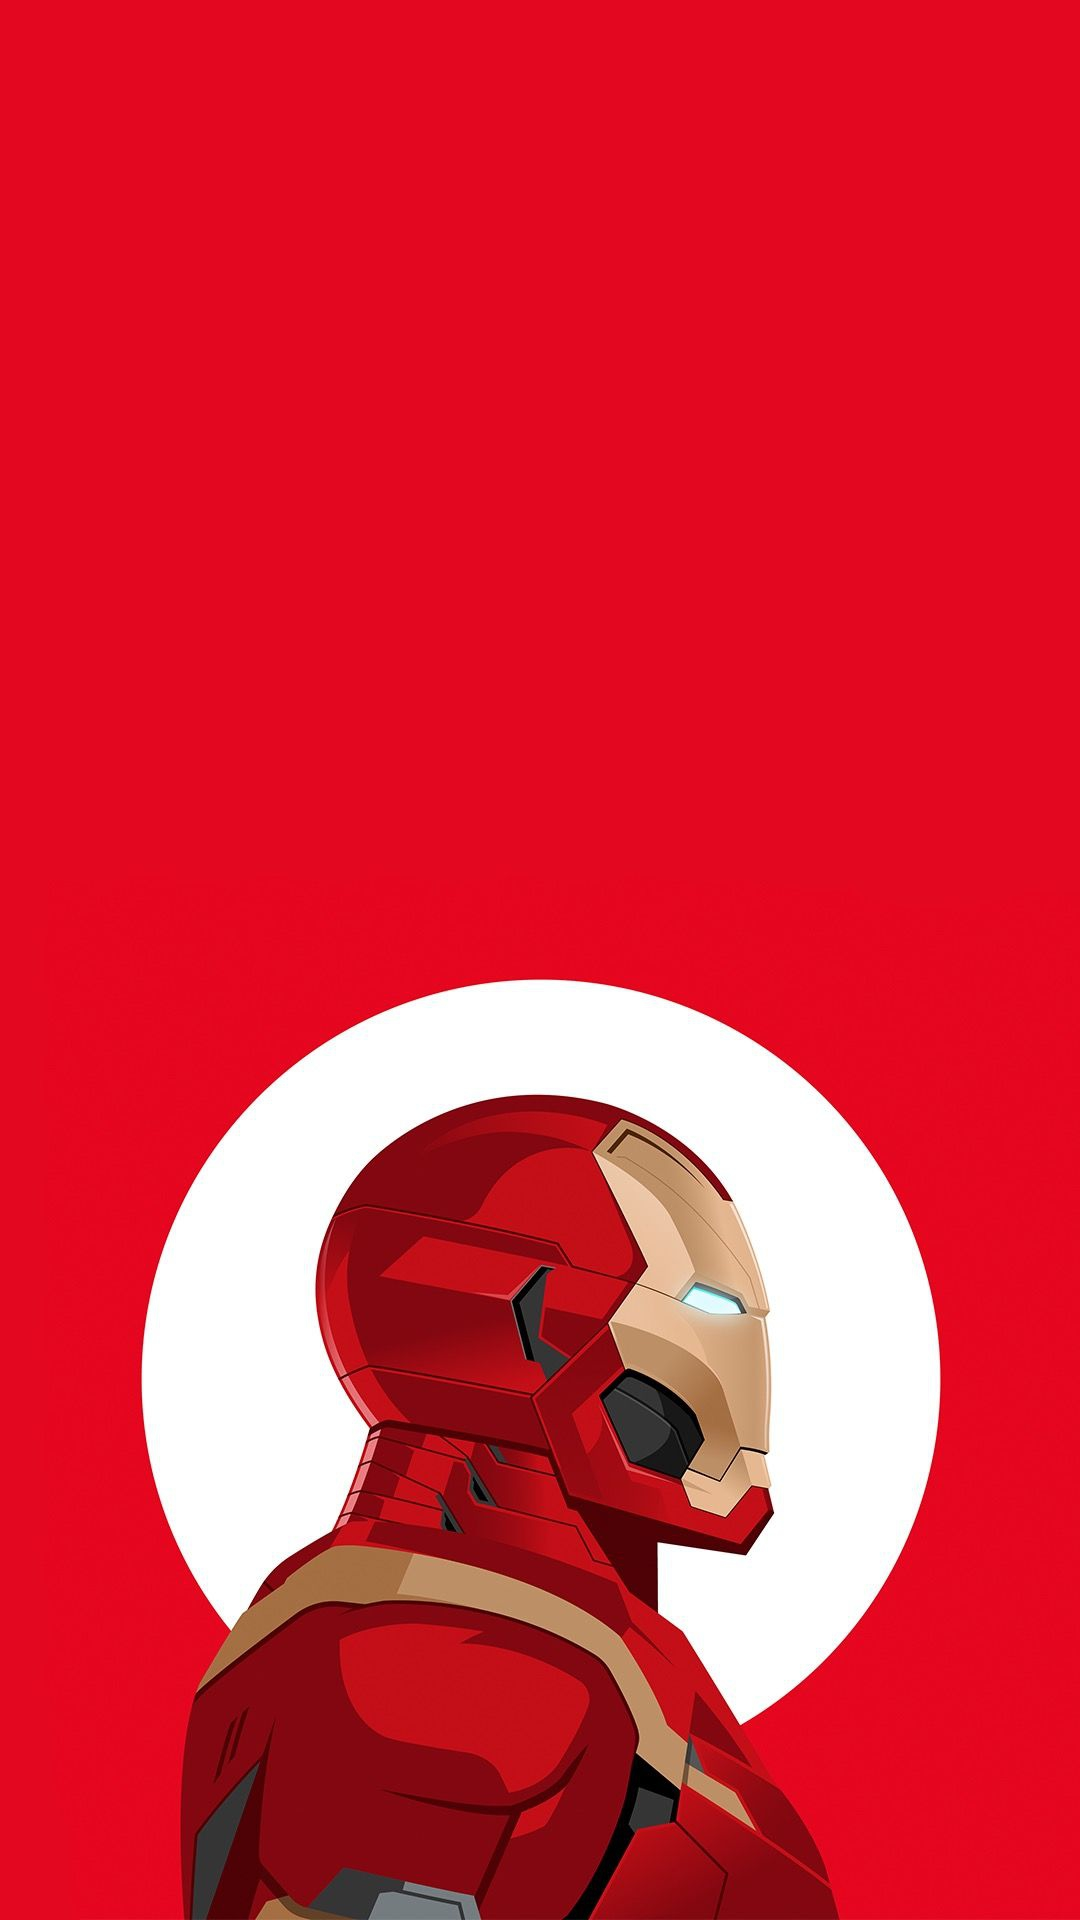 Iron Man Armour Red iPhone Wallpaper